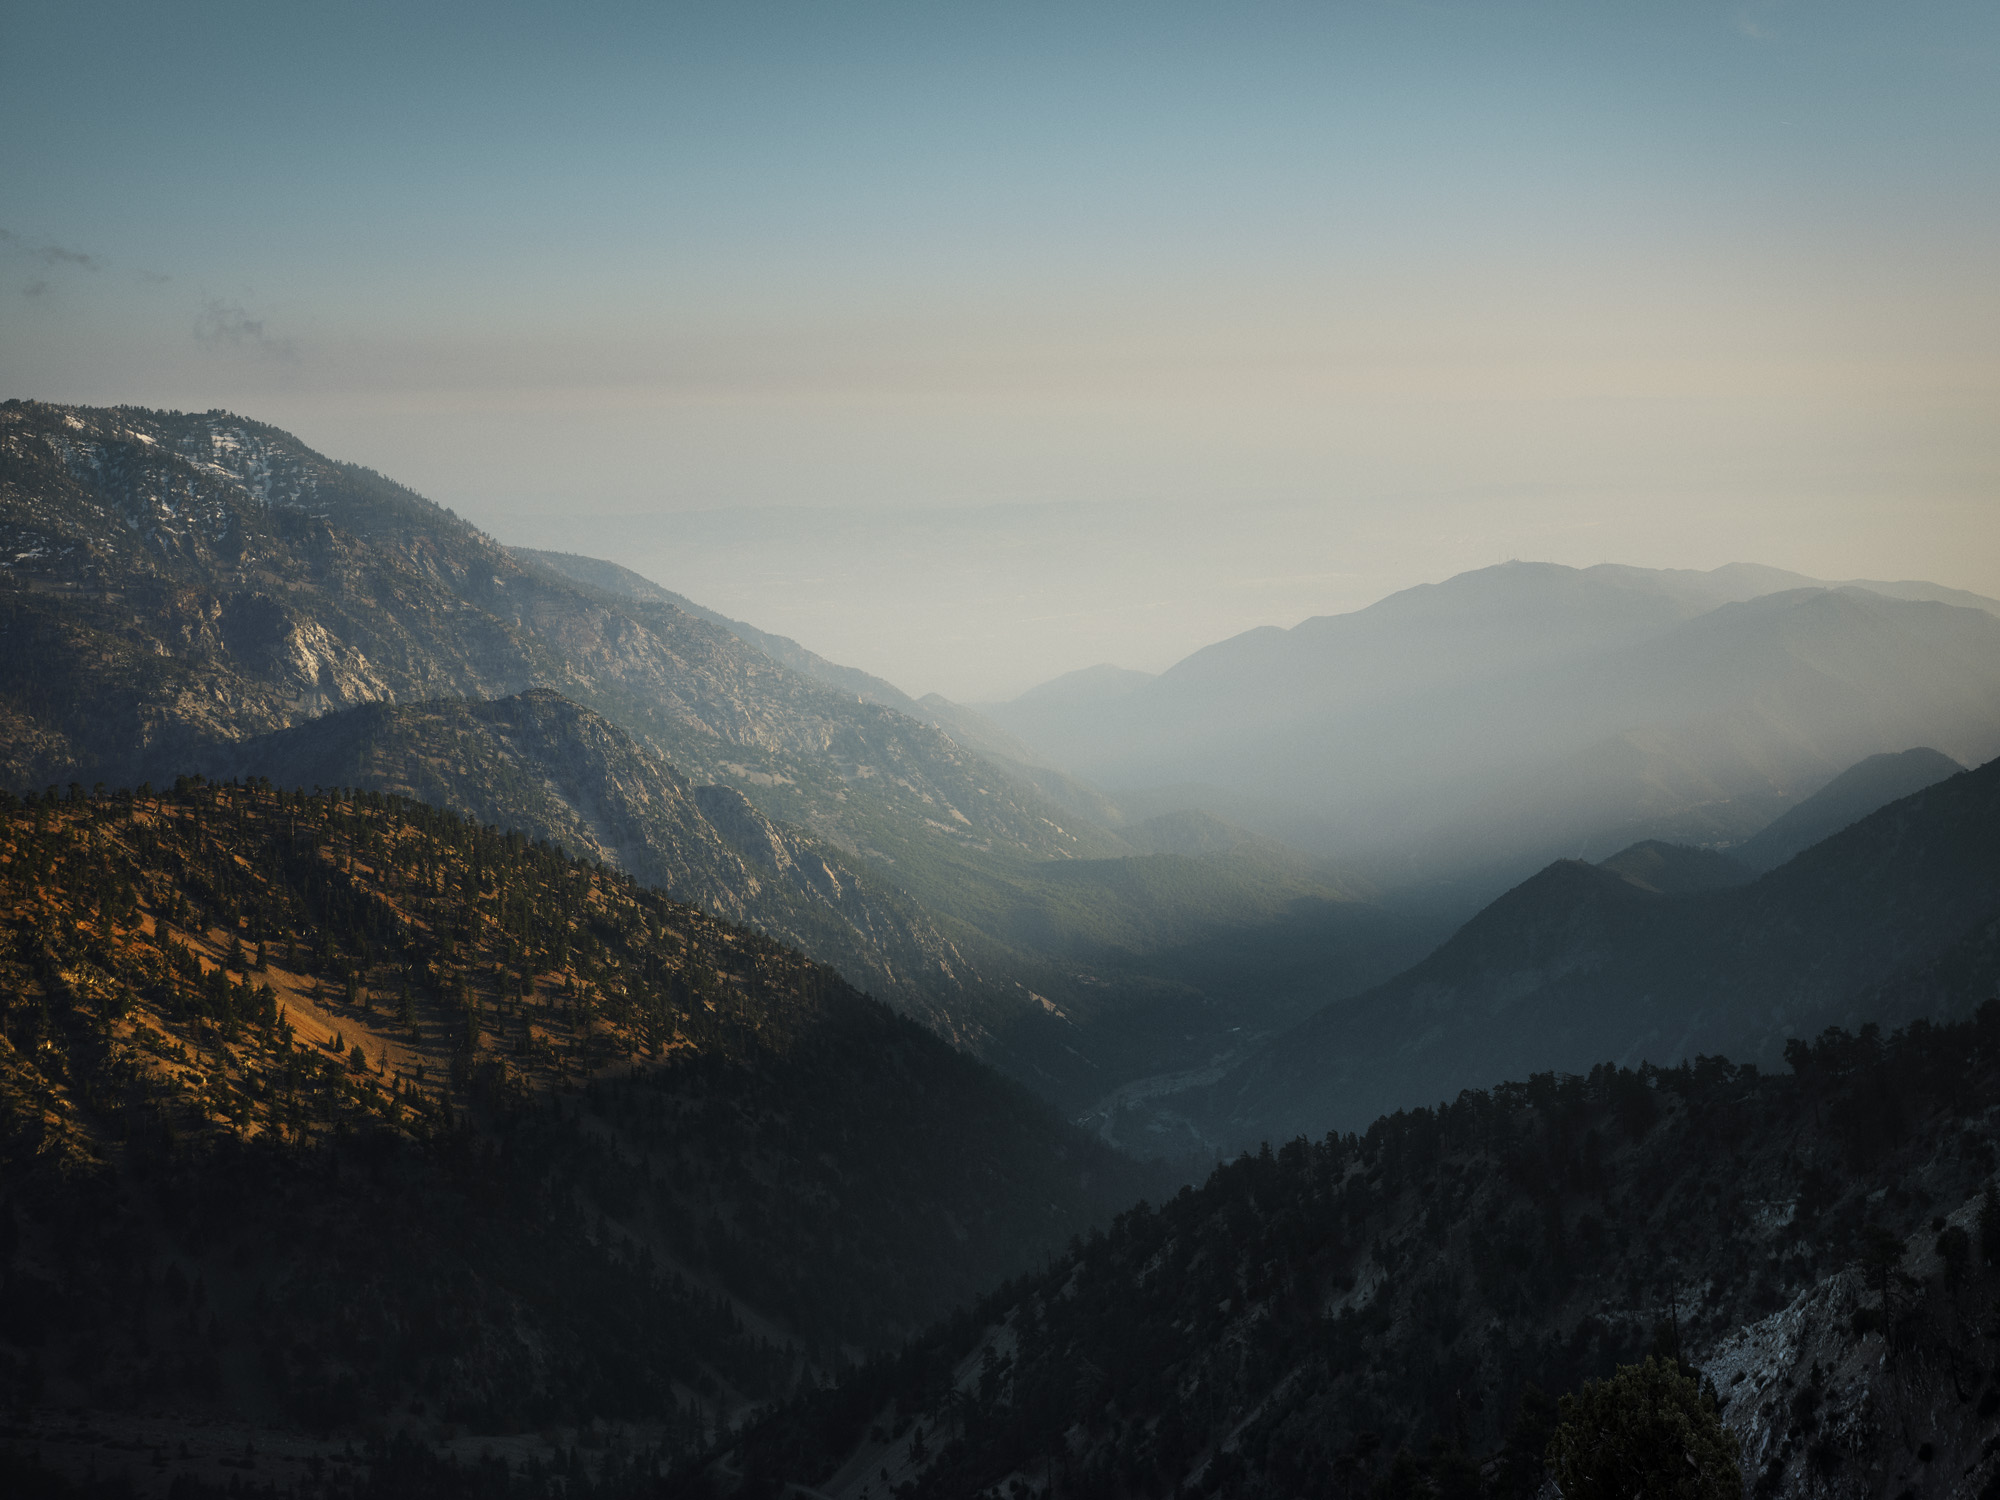 San Gabriel Mountains, just outside LA: In terms of photography, after a while of being somewhere, you really start to notice the intricacies of a place. You start to learn when is the best time to go and get the best light, you know what to look for and because you become confident, you know what interests you and what doesn't.